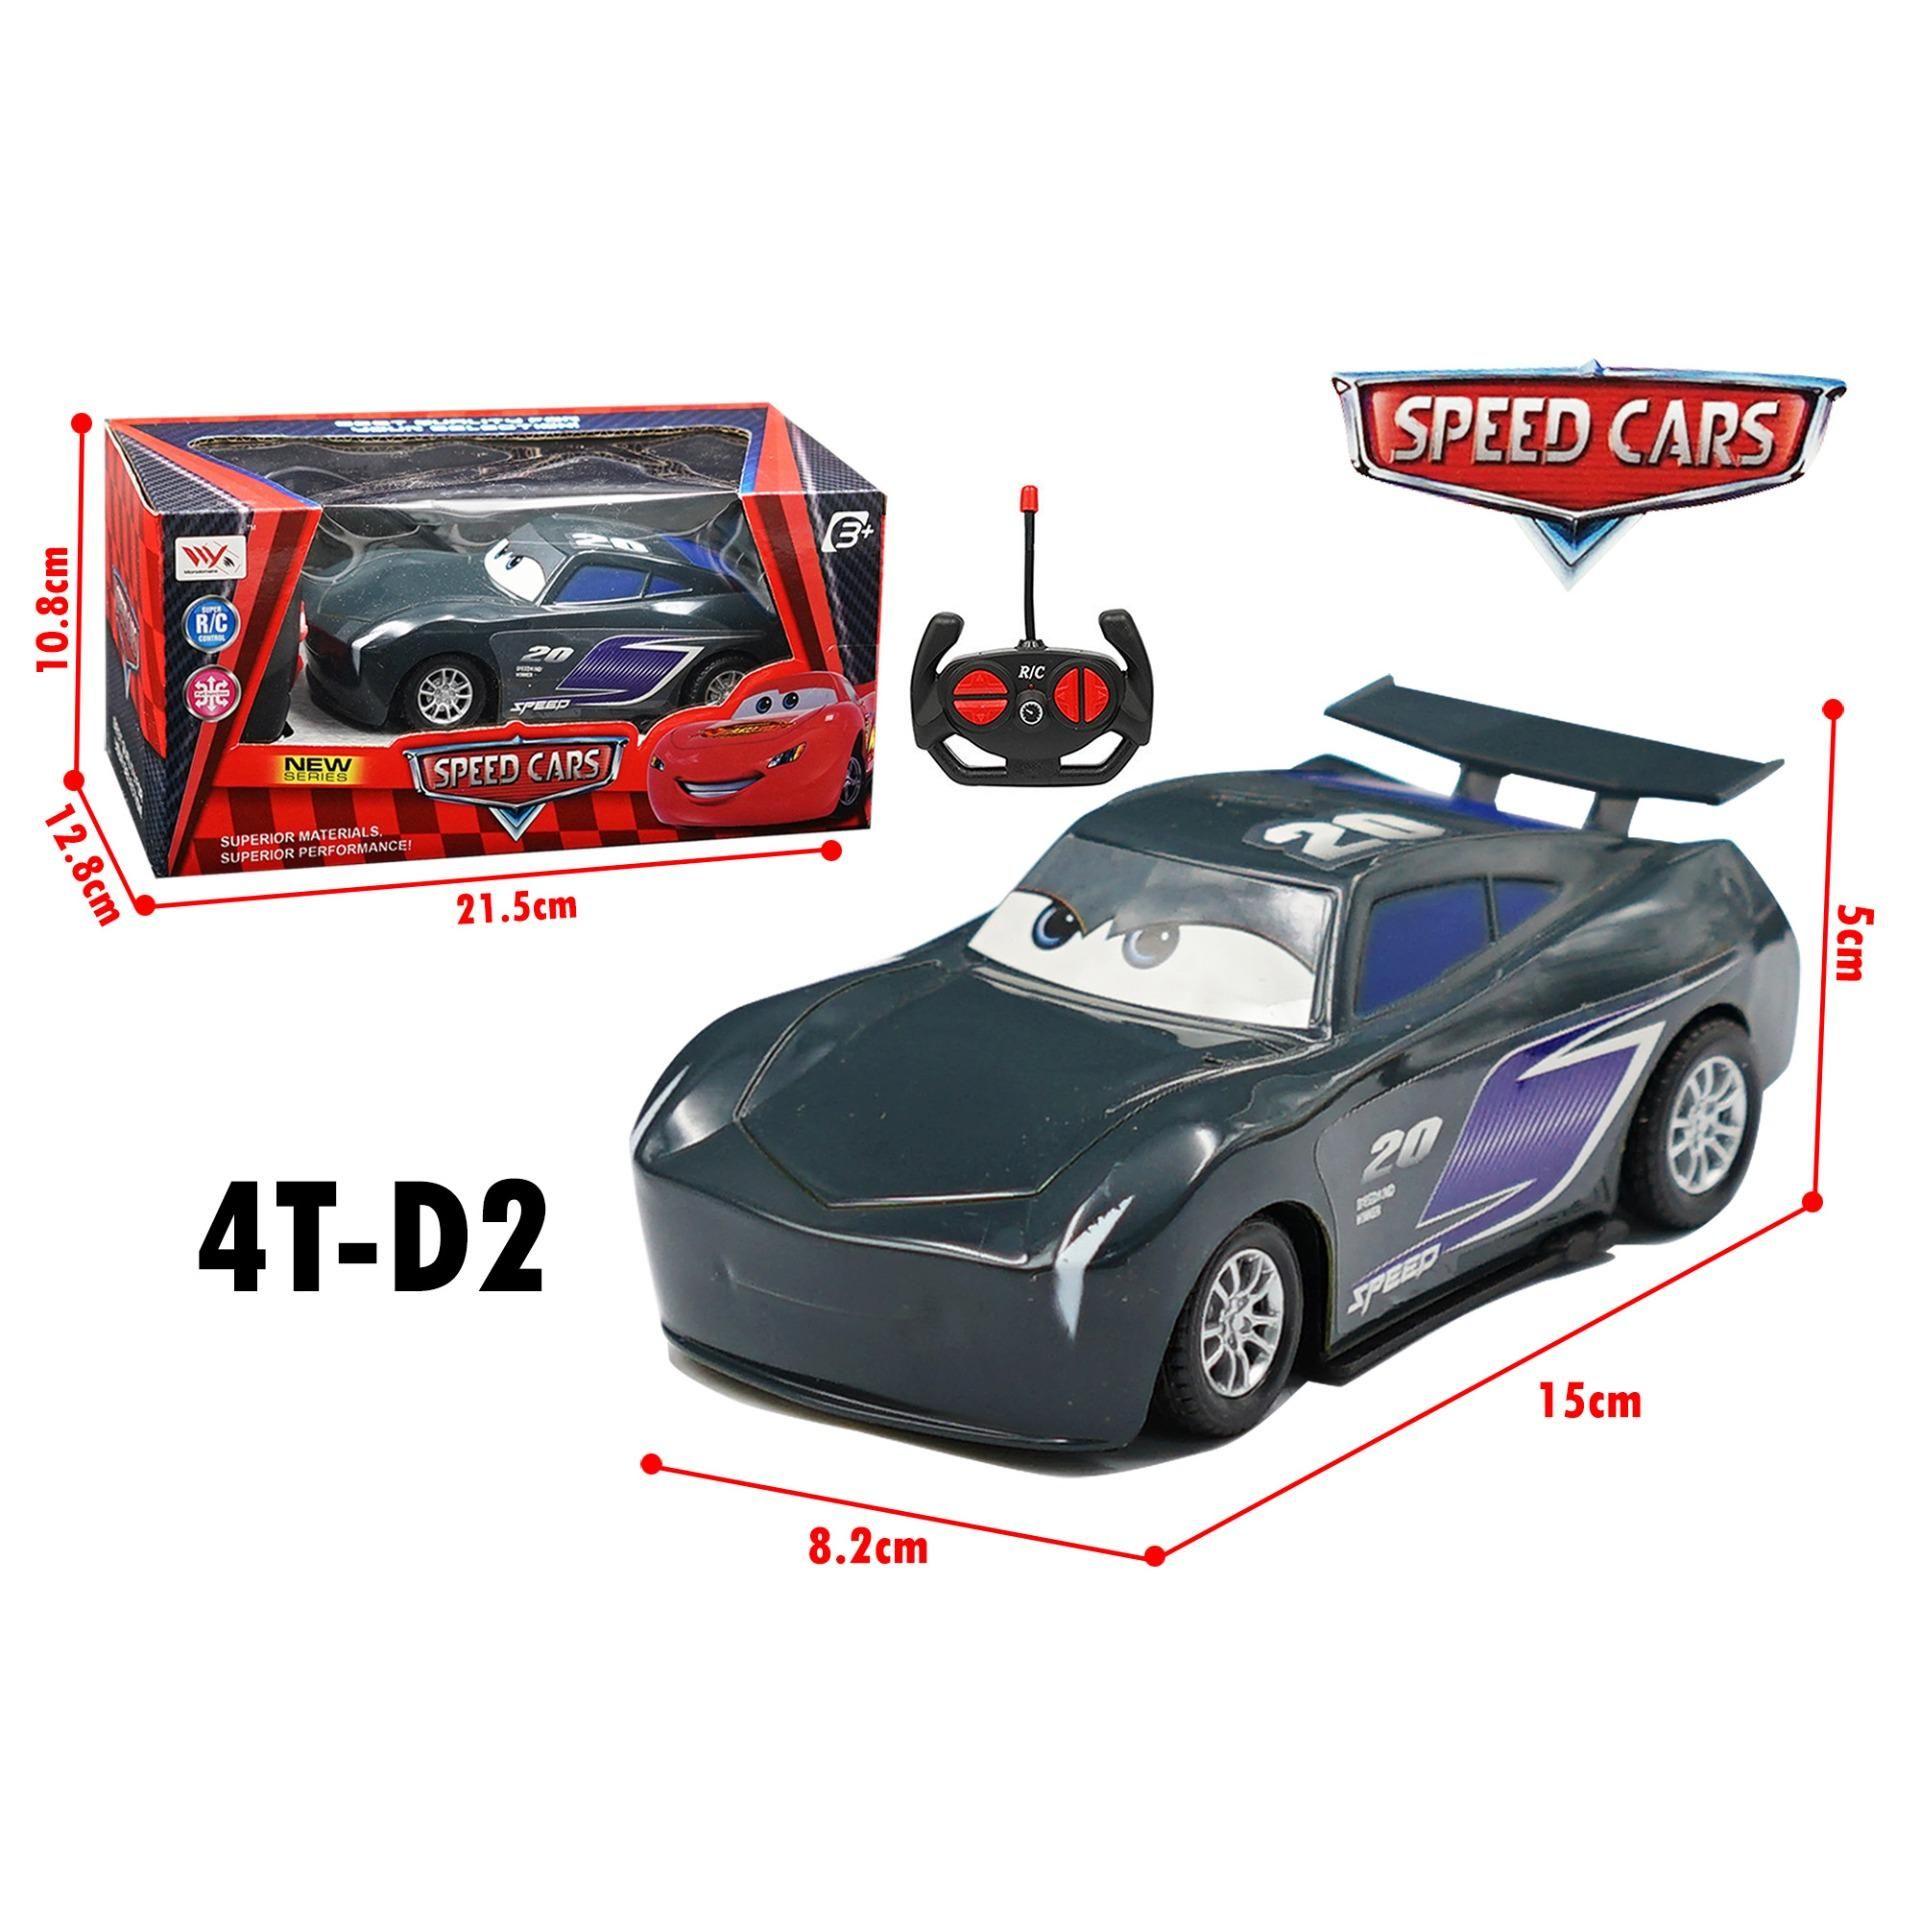 RKJ Mainan Anak RC Mobil Remot Speed Cars with Lights  4T-D2- Hitam